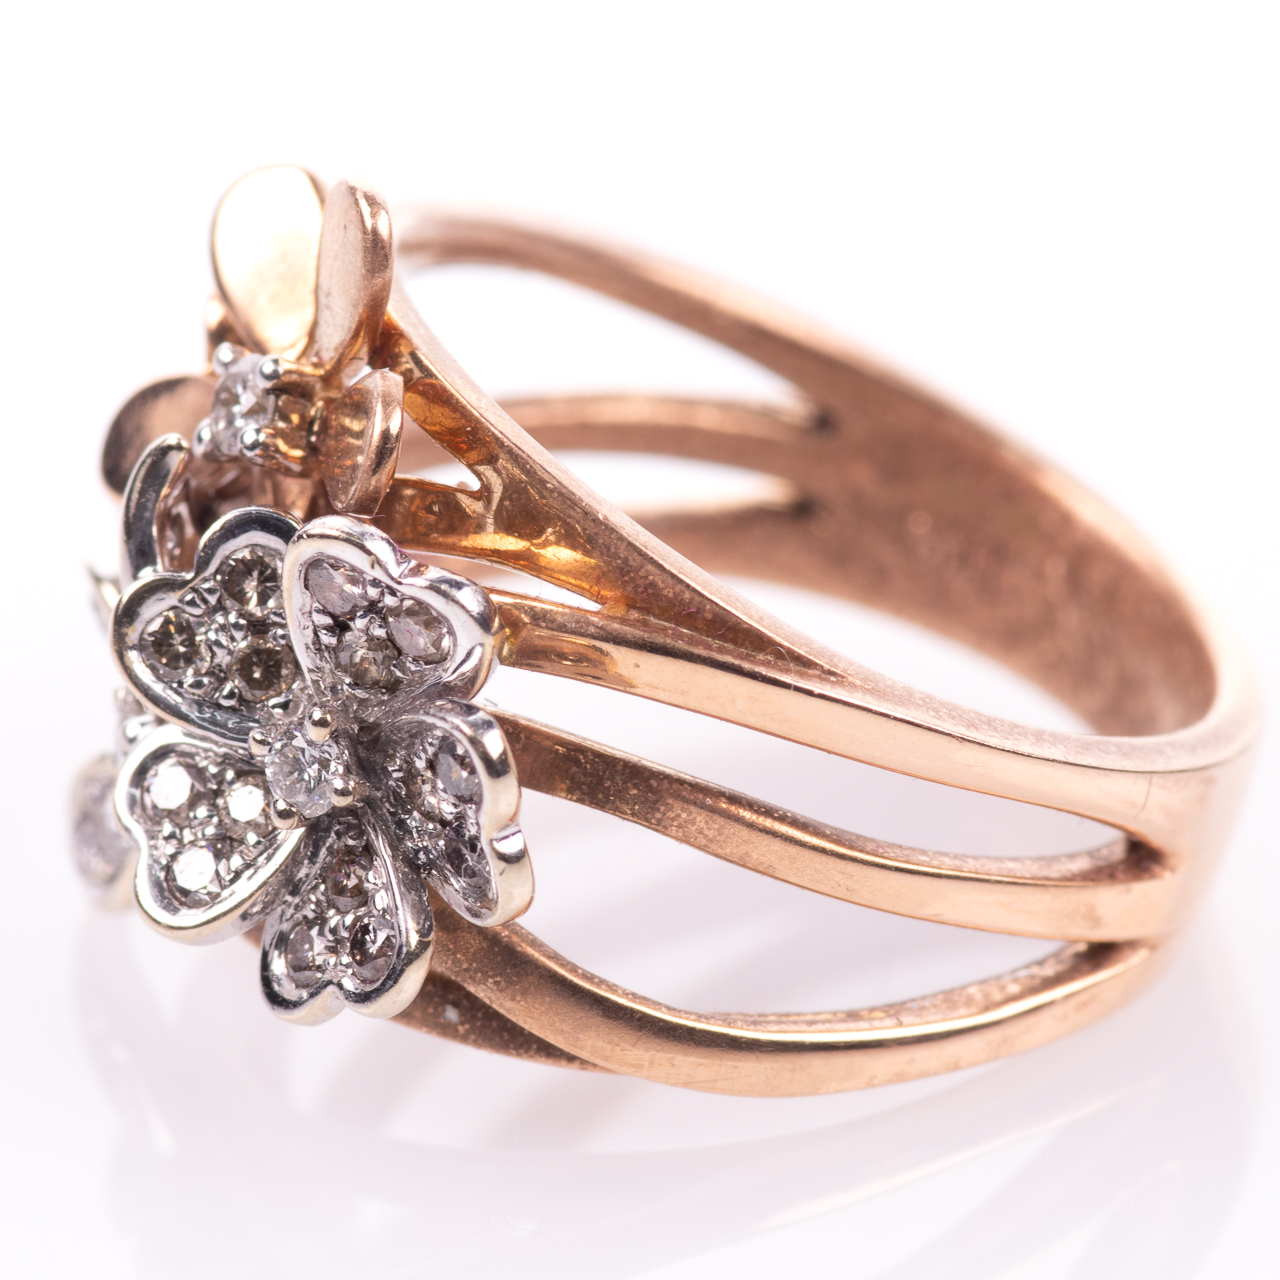 18ct Pink Gold Floral 0.25ct Diamond Ring - Image 4 of 7